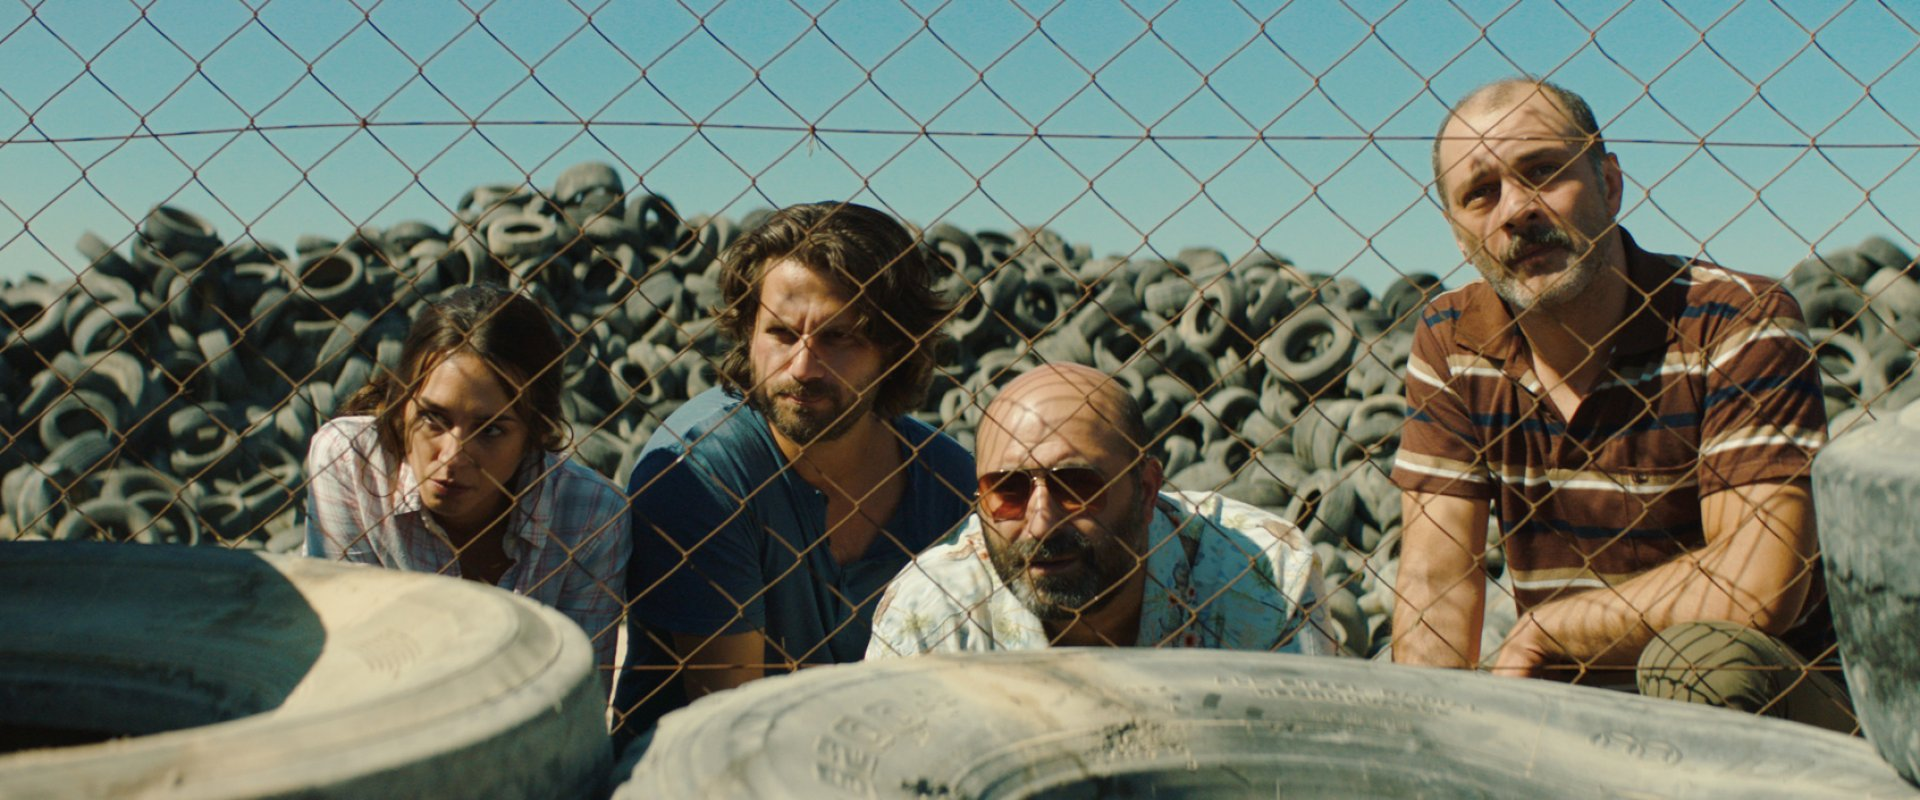 three men and a woman looking through a chain-link fence